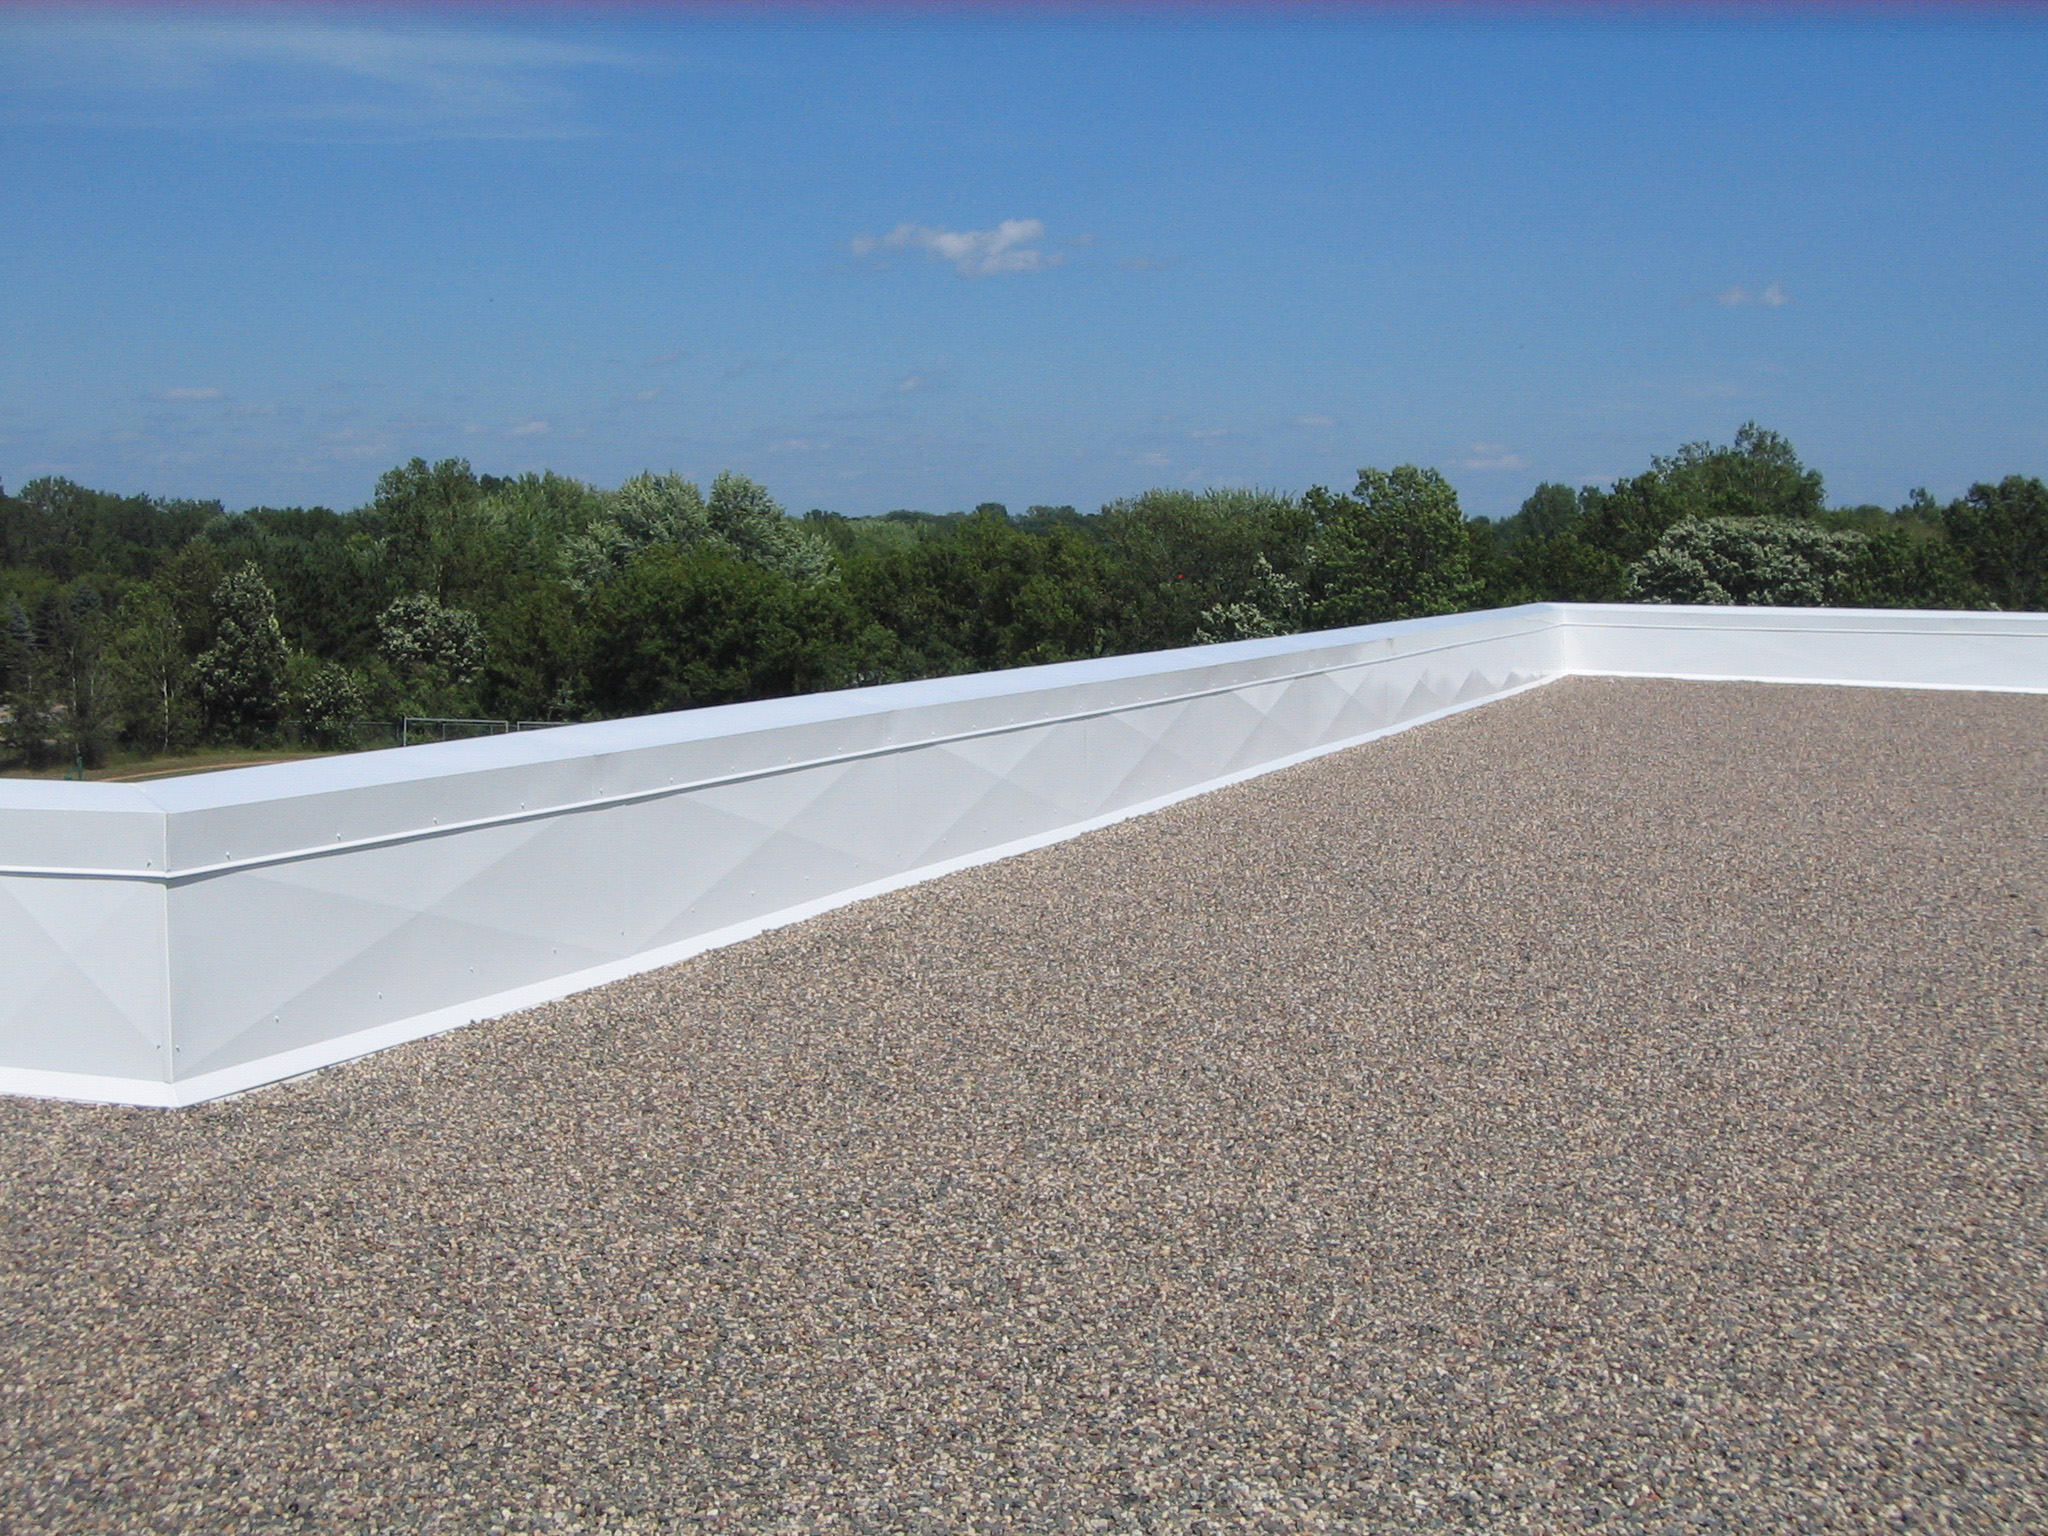 garland introduces es 1 pliant r mer edge roof edge system